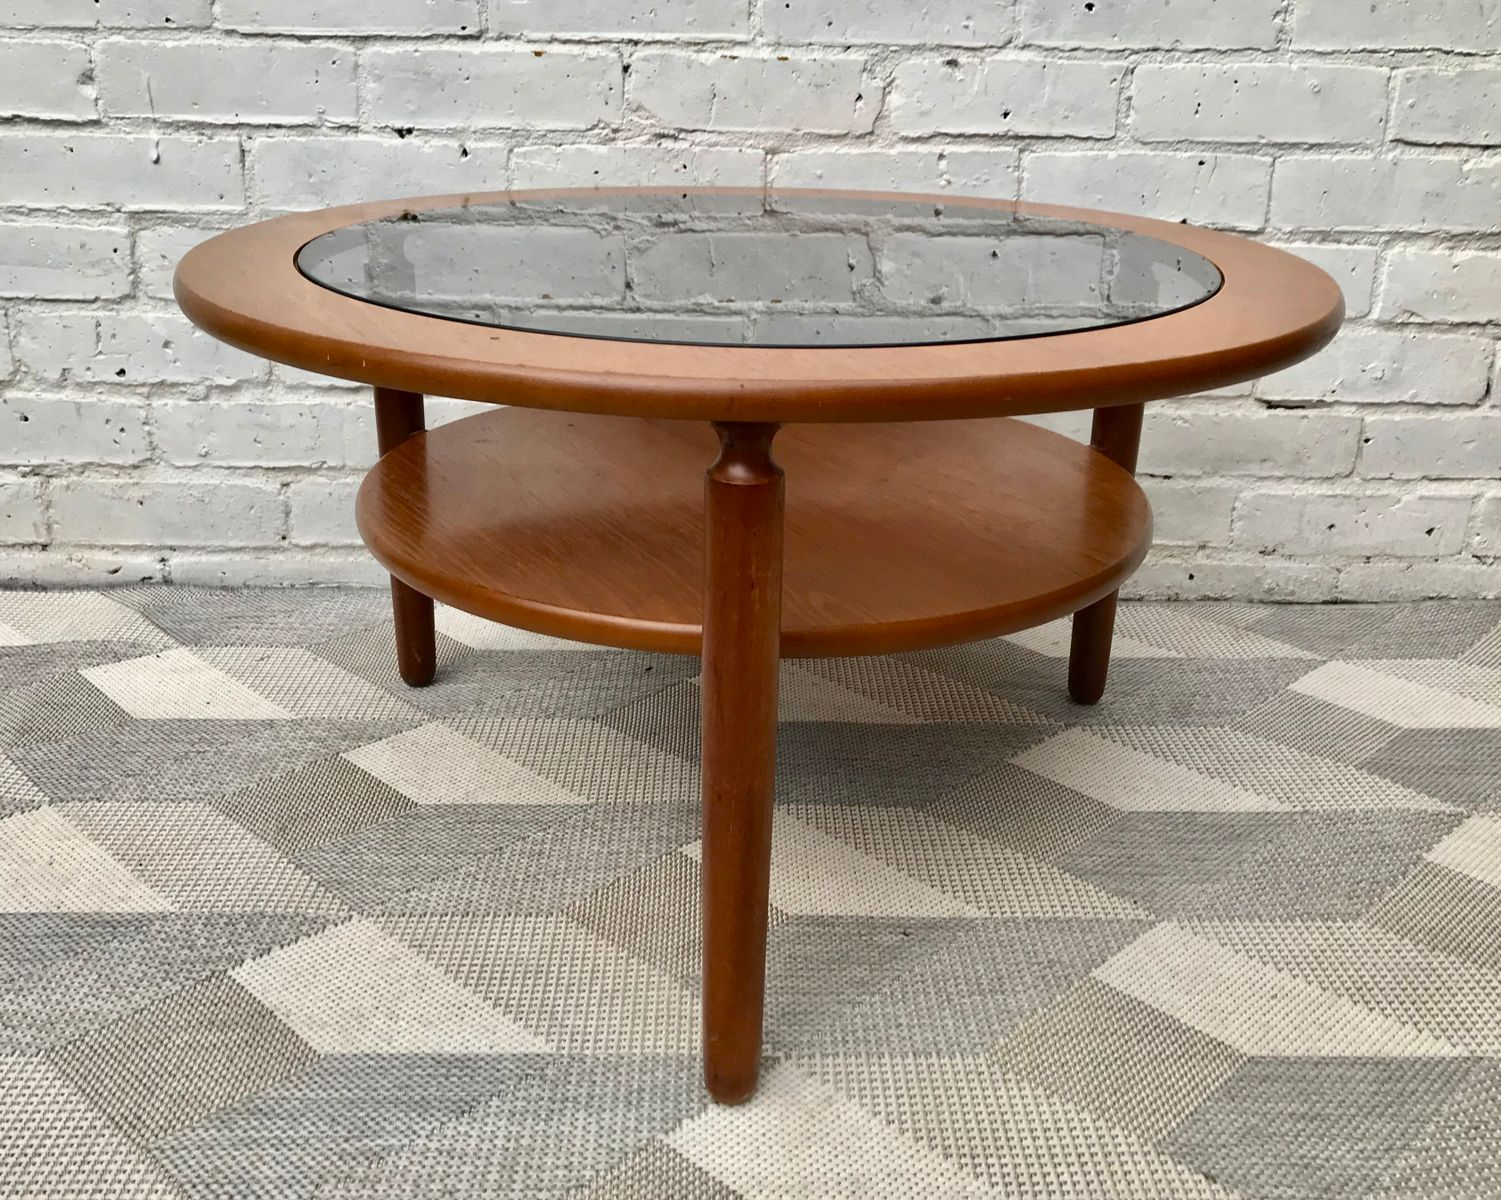 Vintage Round Coffee Table With Glass For Sale At Pamono